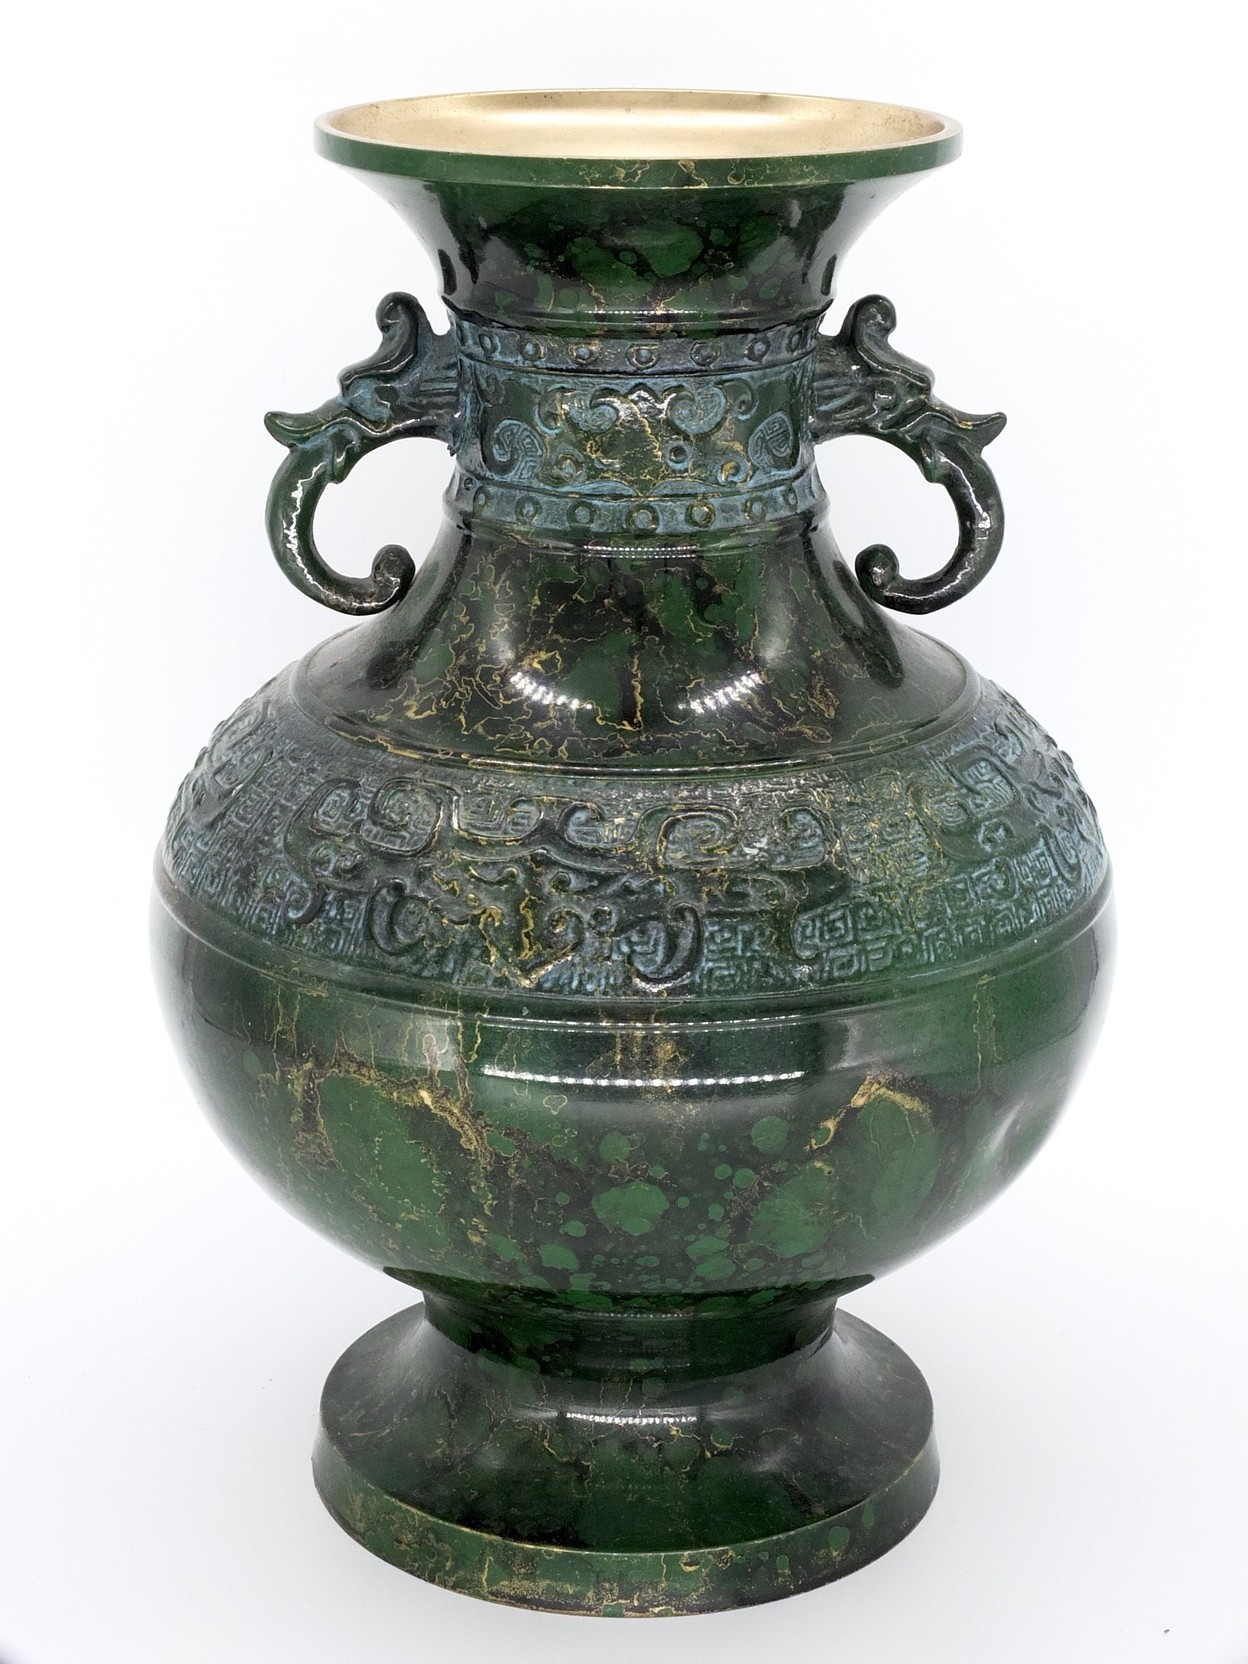 'Korean Lacquer Decorated Brass Archaistic Vase'